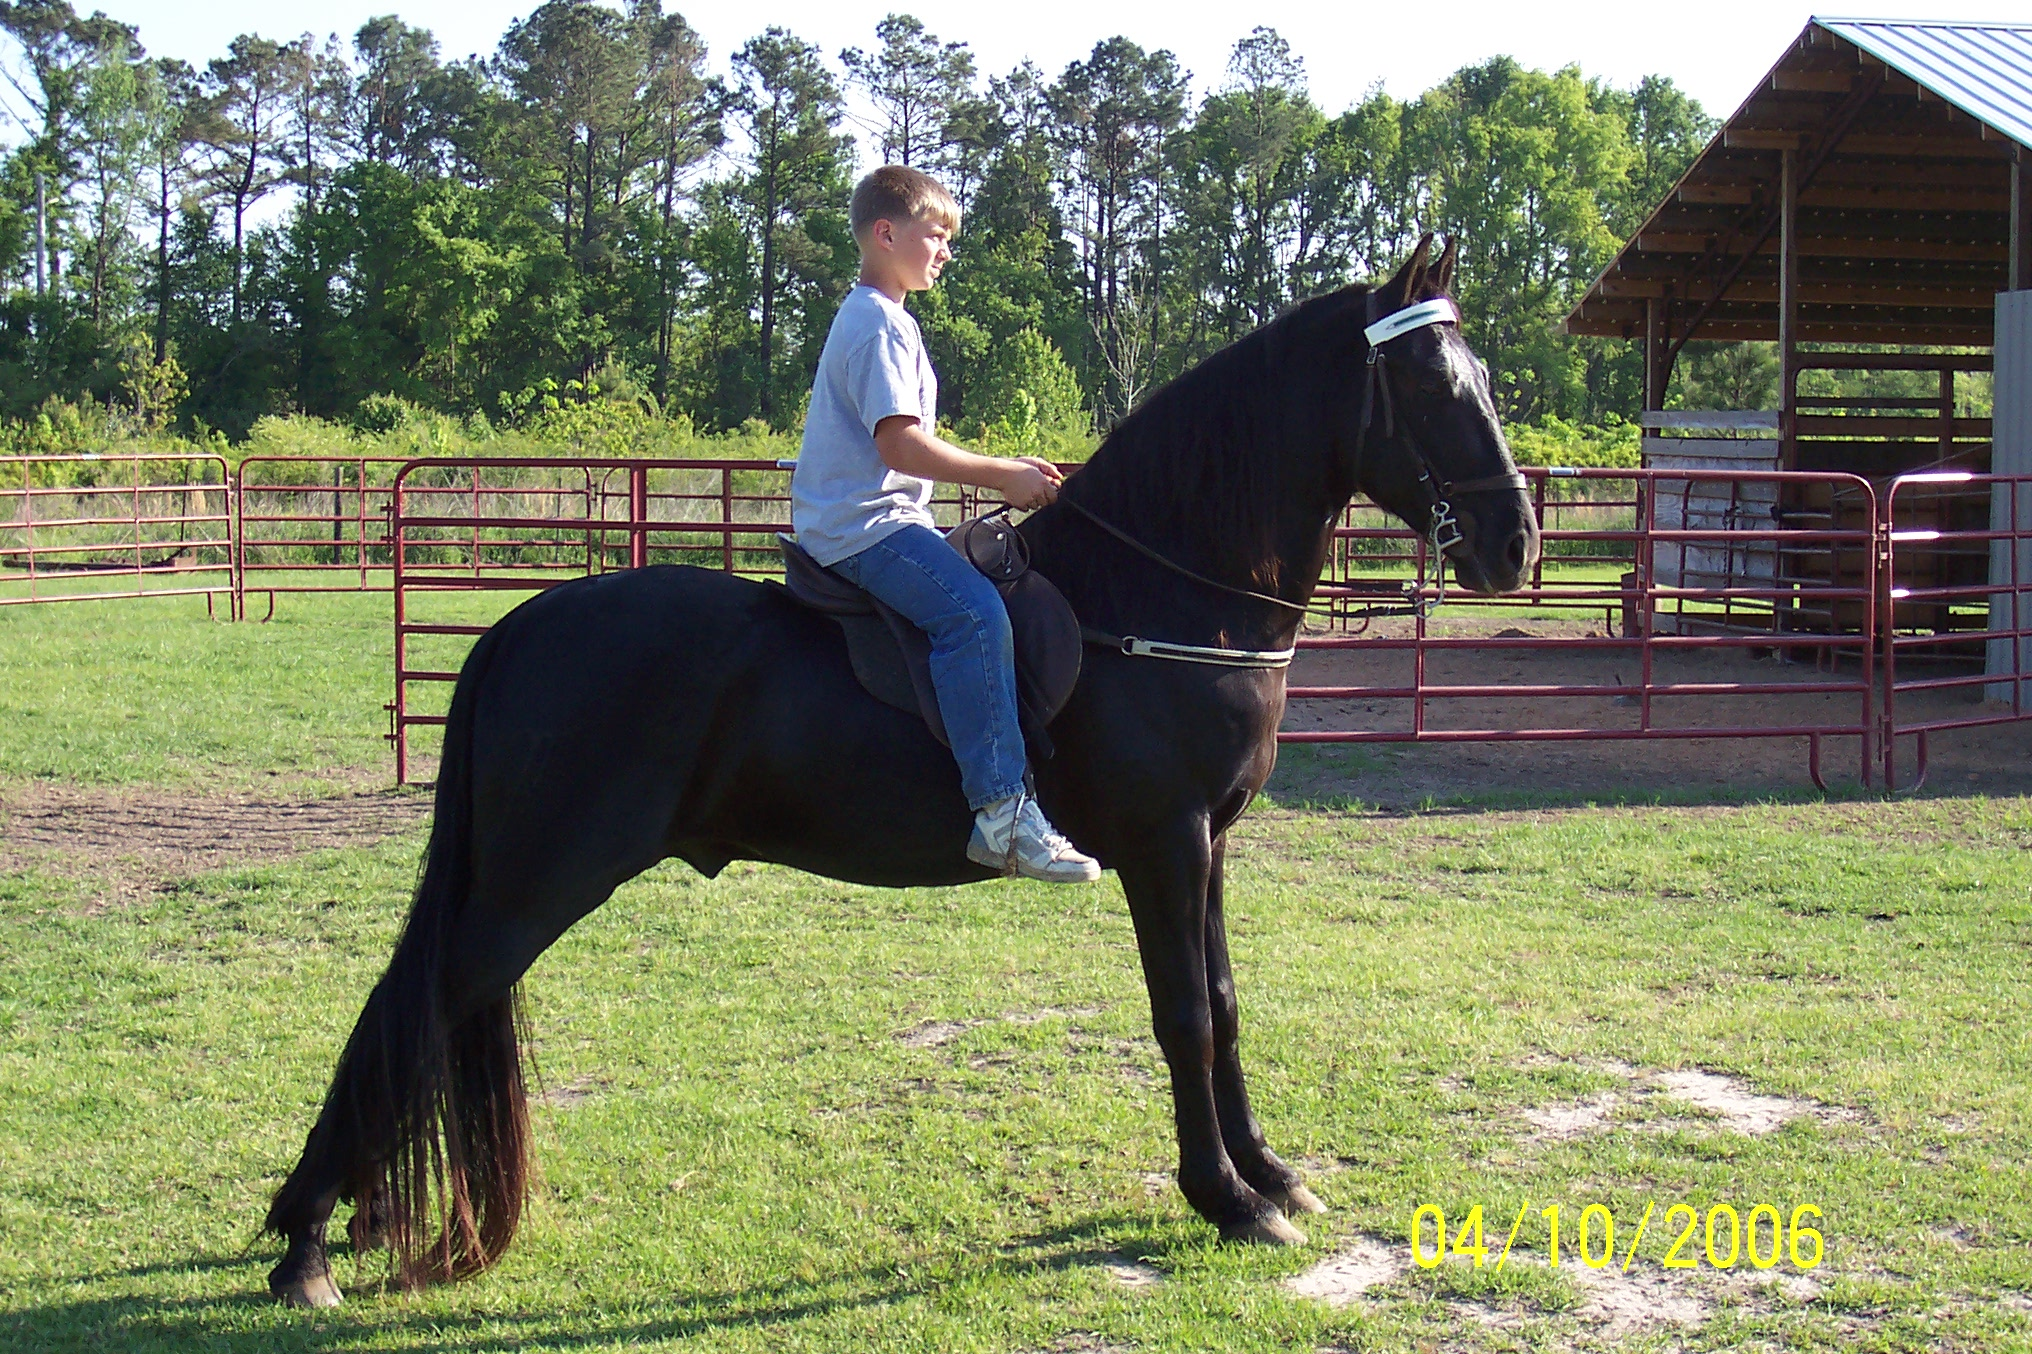 This Is Rocky Our Registered Tennessee Walking Horse Stallion He Five Years Old And Just A Wonderful Also Racking